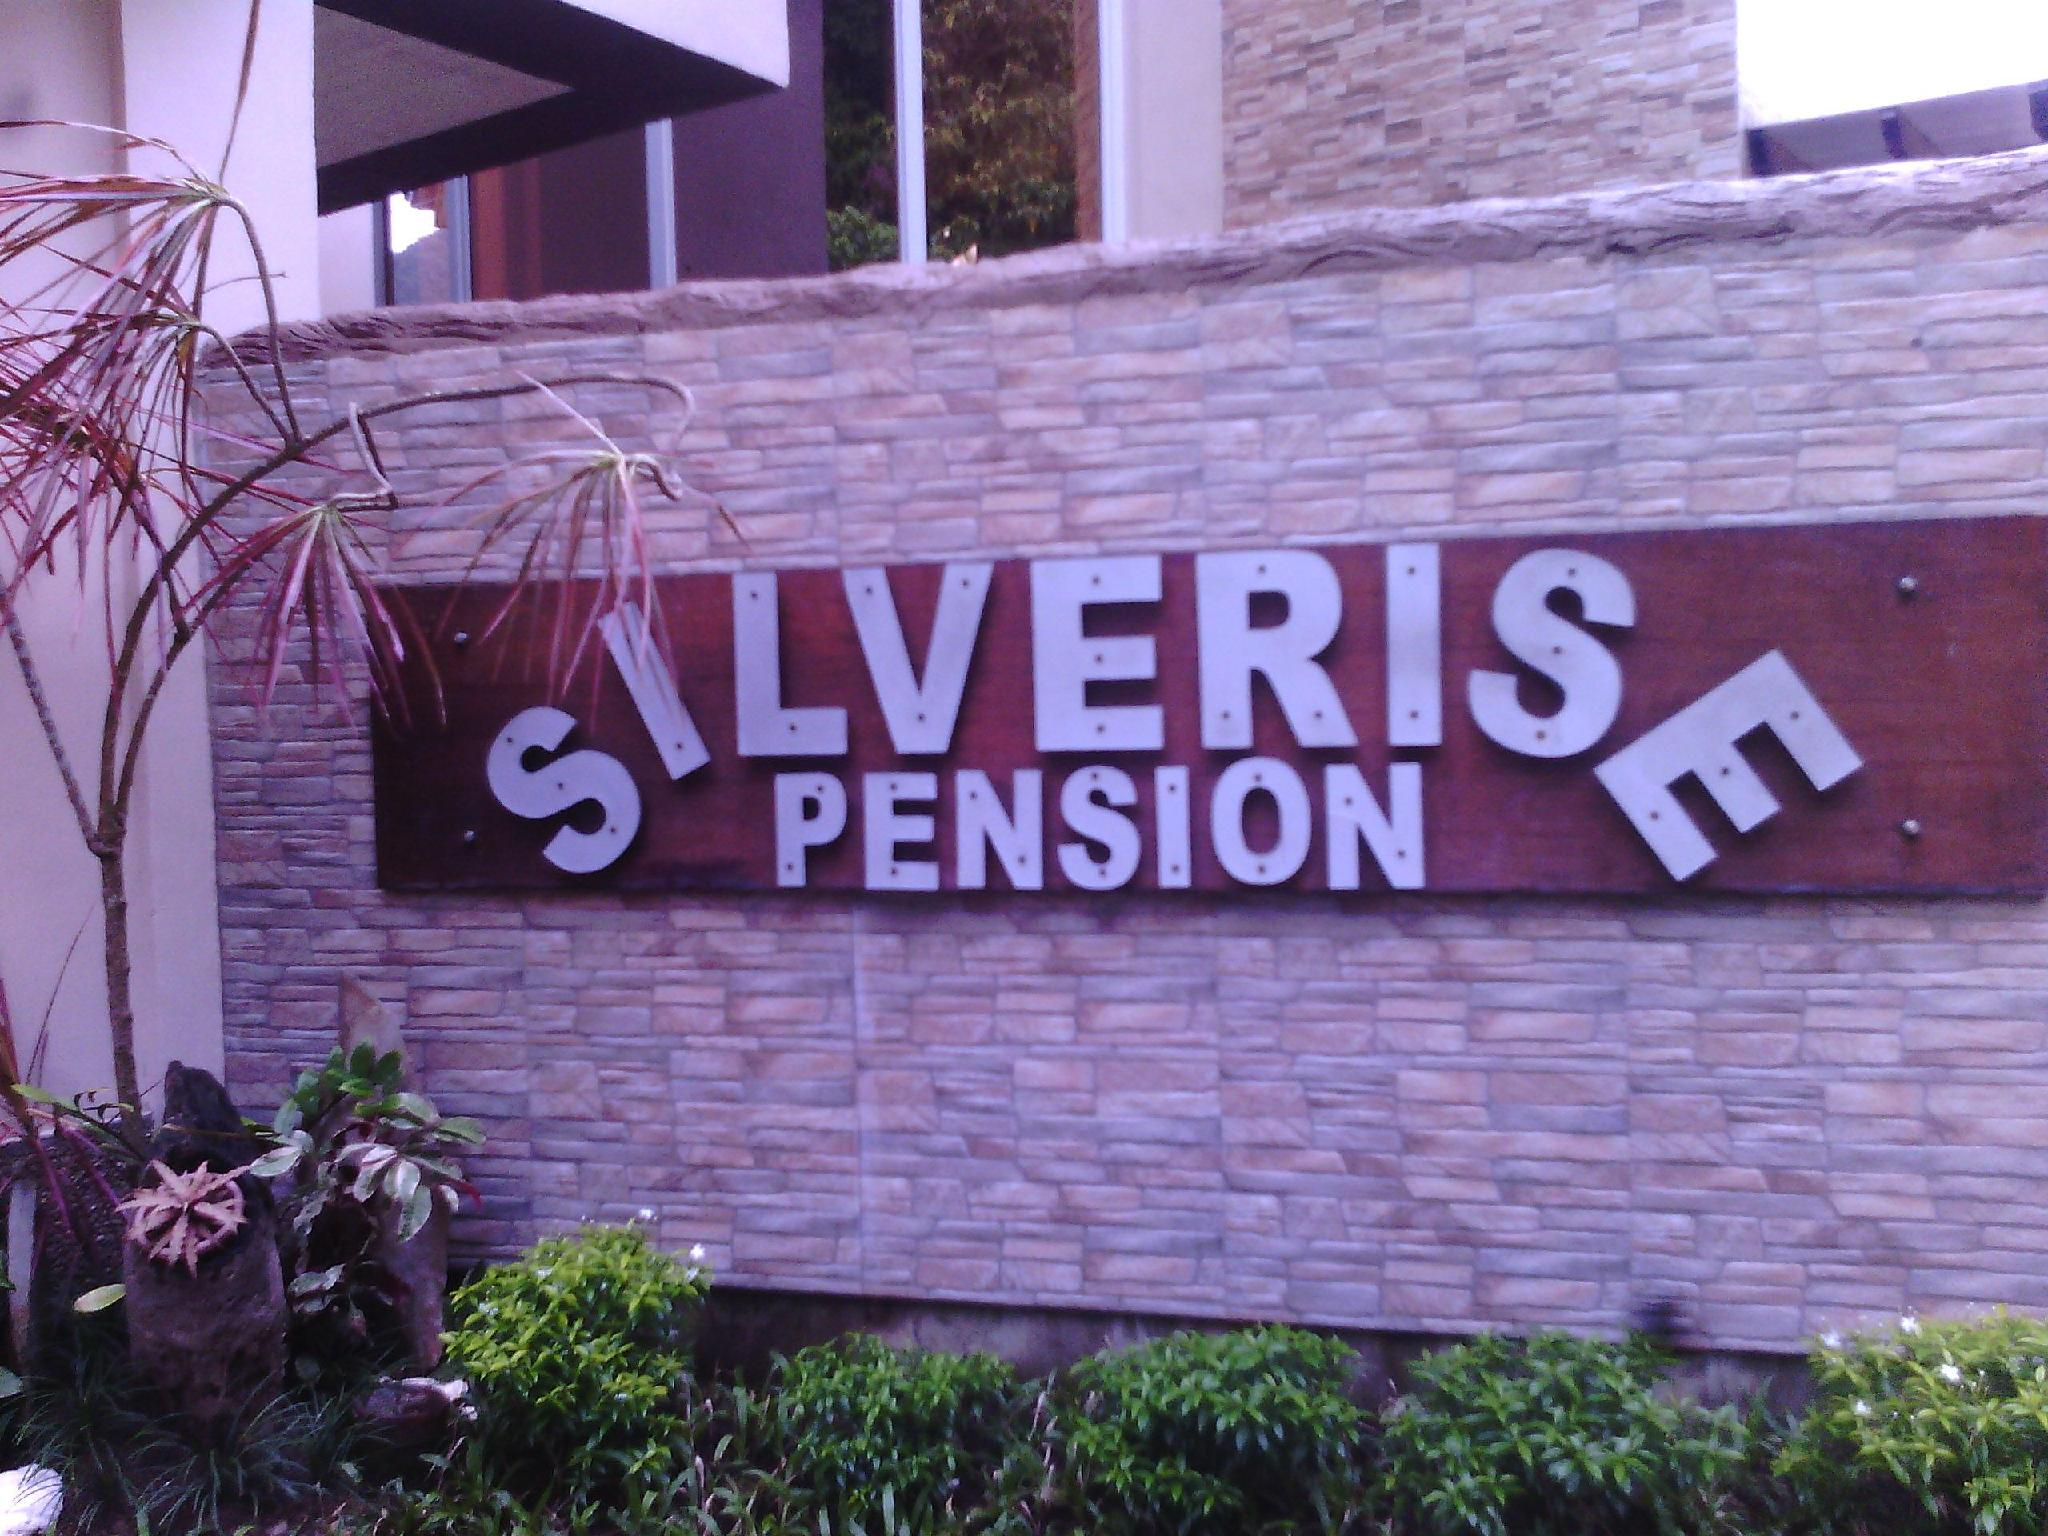 Silverise Pension - Hotels and Accommodation in Philippines, Asia